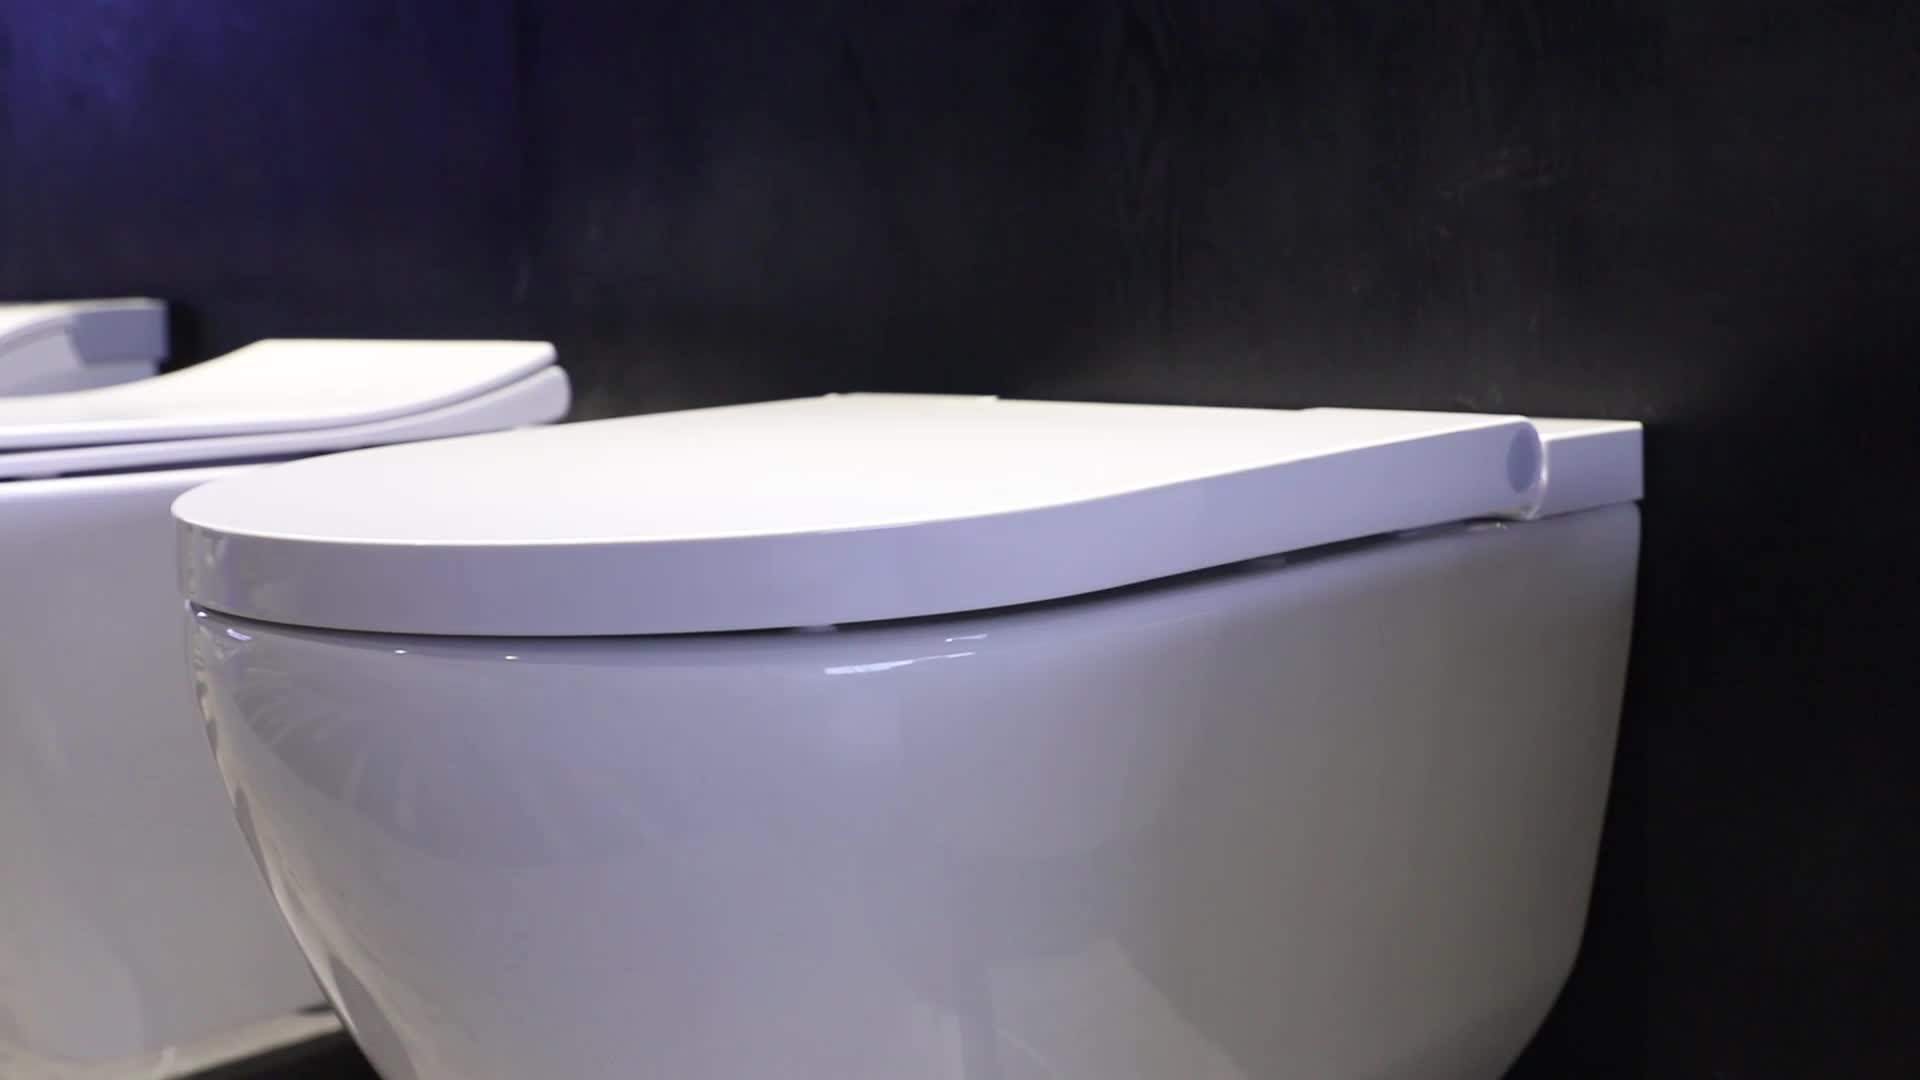 Easy-cleaning Space-saving design bathroom ceramic rimless wall hung toilet